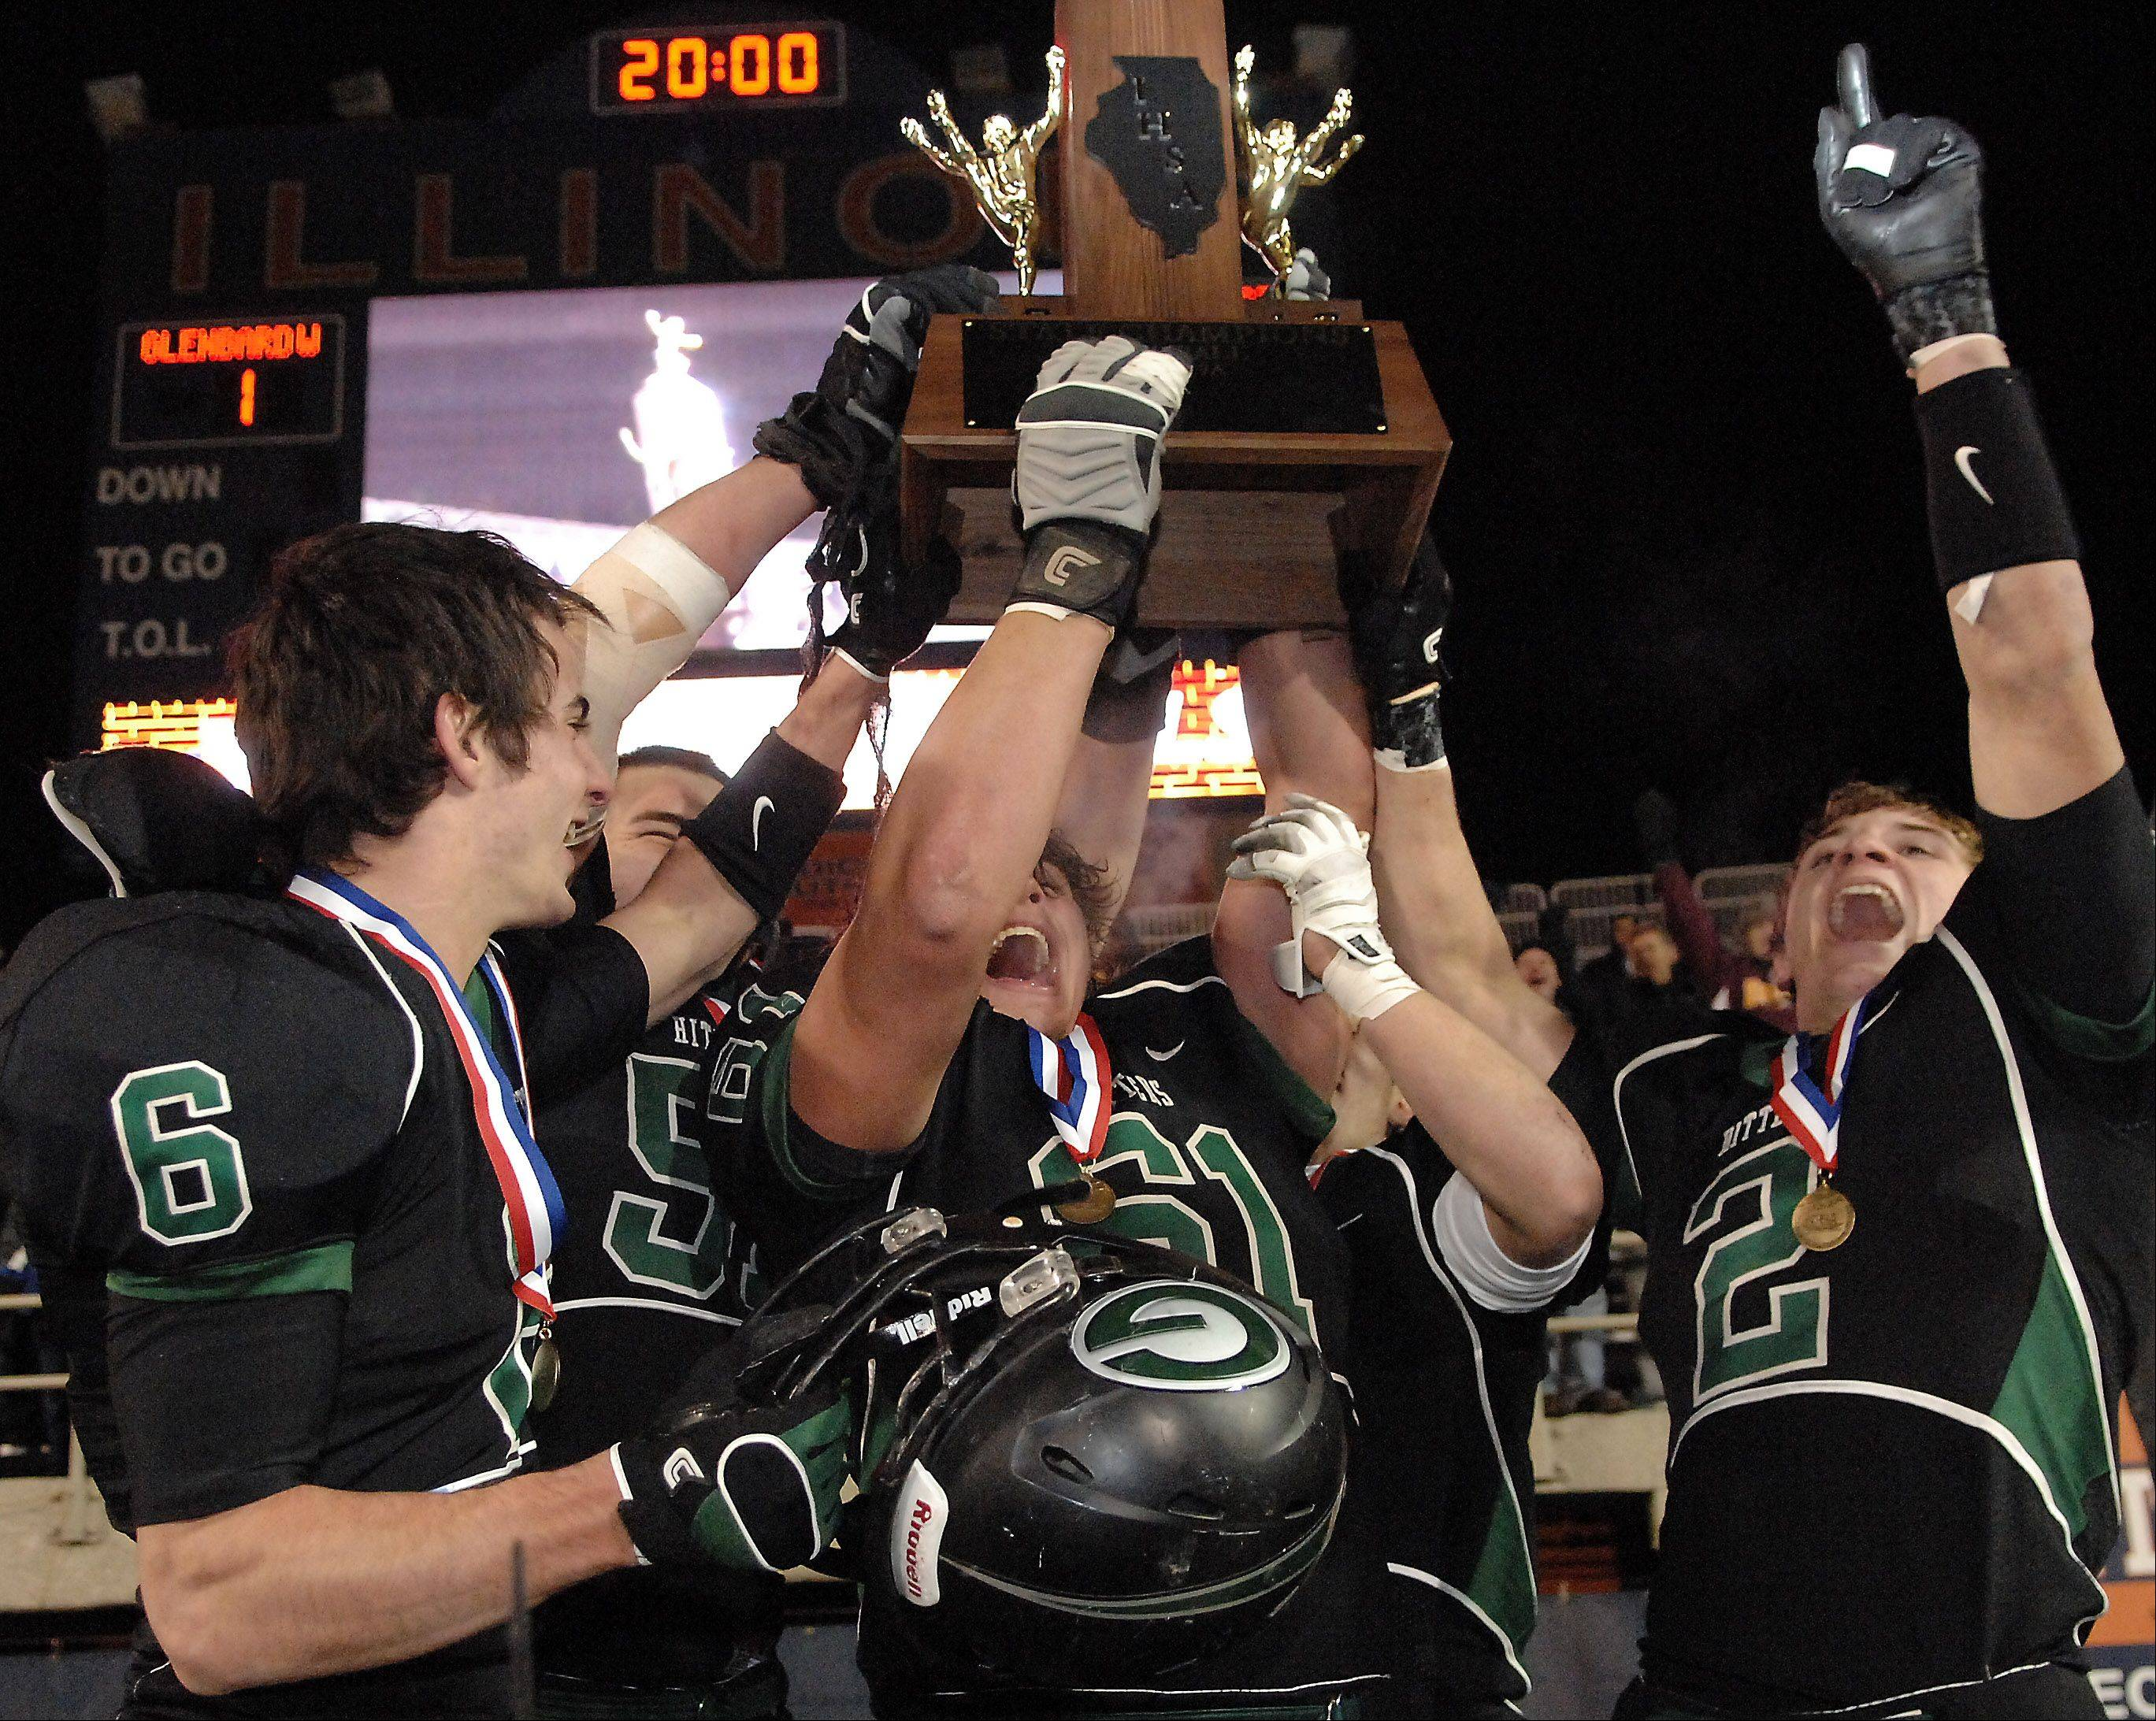 The Glenbard West captains hoist the championship trophy after their win over Lincoln-Way East during Saturday's Class 7A state title game at Memorial Stadium in Champaign.